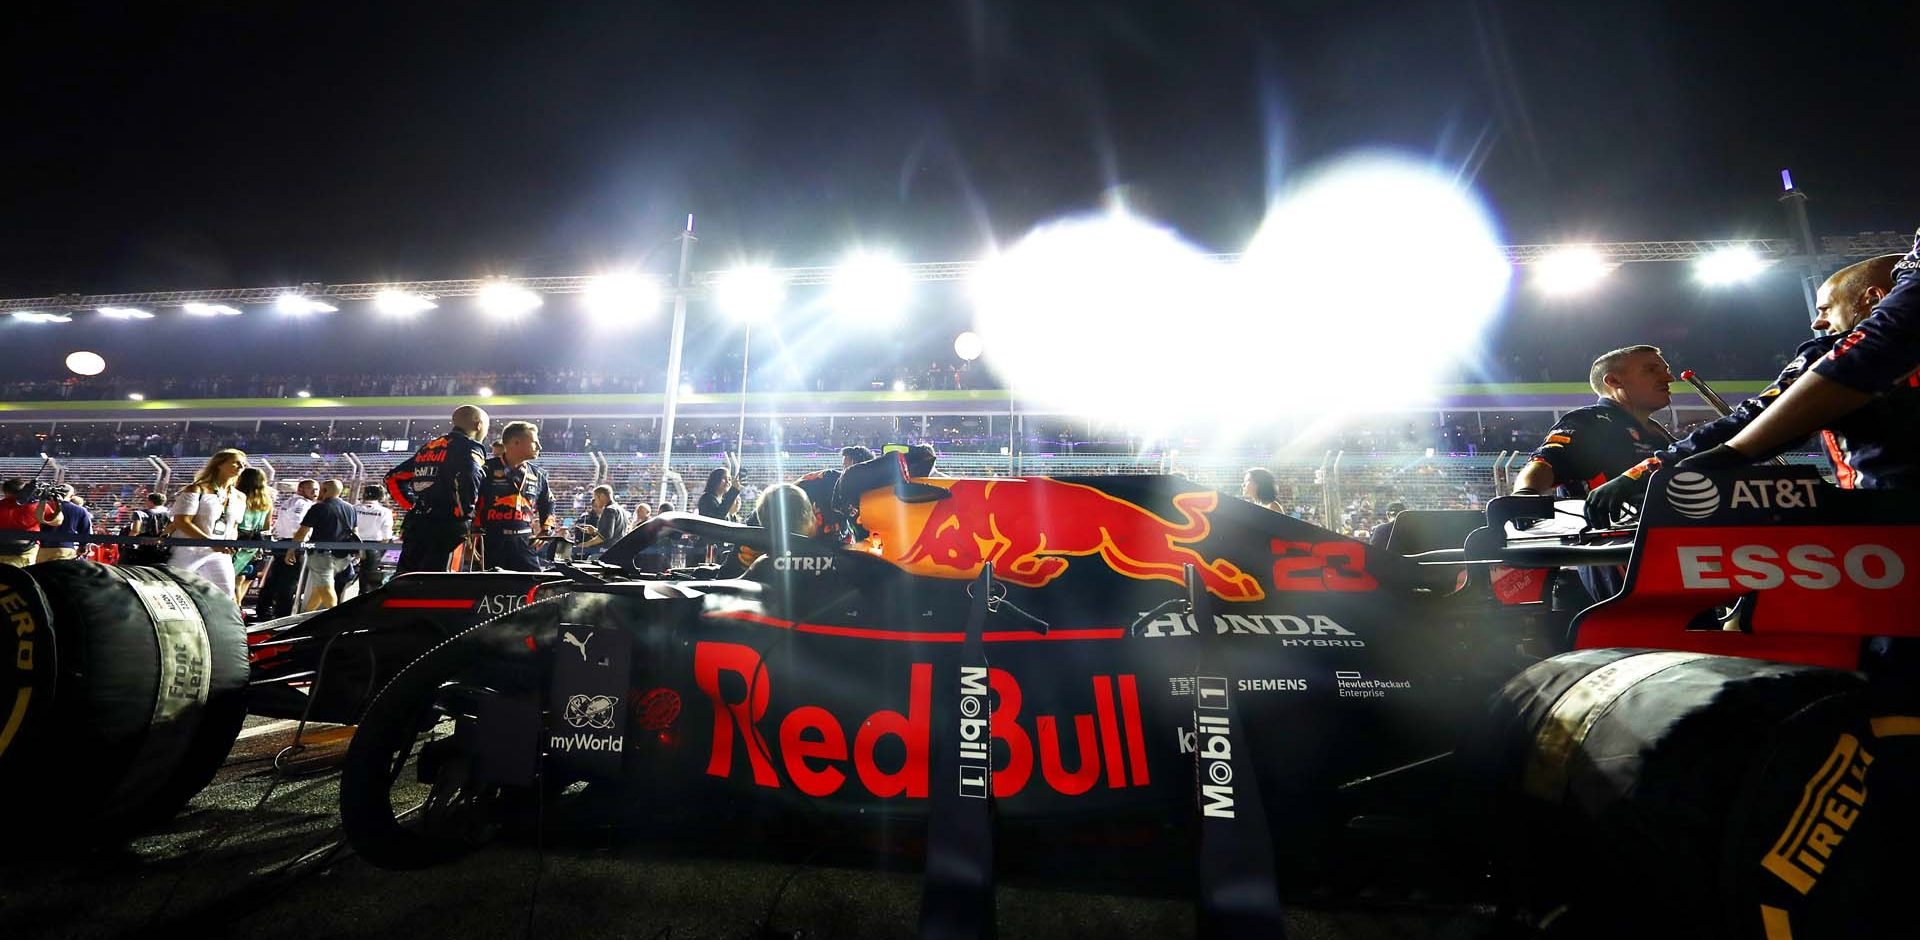 SINGAPORE, SINGAPORE - SEPTEMBER 22: The car of Alexander Albon of Thailand and Red Bull Racing is seen on the grid before the F1 Grand Prix of Singapore at Marina Bay Street Circuit on September 22, 2019 in Singapore. (Photo by Mark Thompson/Getty Images) // Getty Images / Red Bull Content Pool  // AP-21NAHFTVW2111 // Usage for editorial use only //